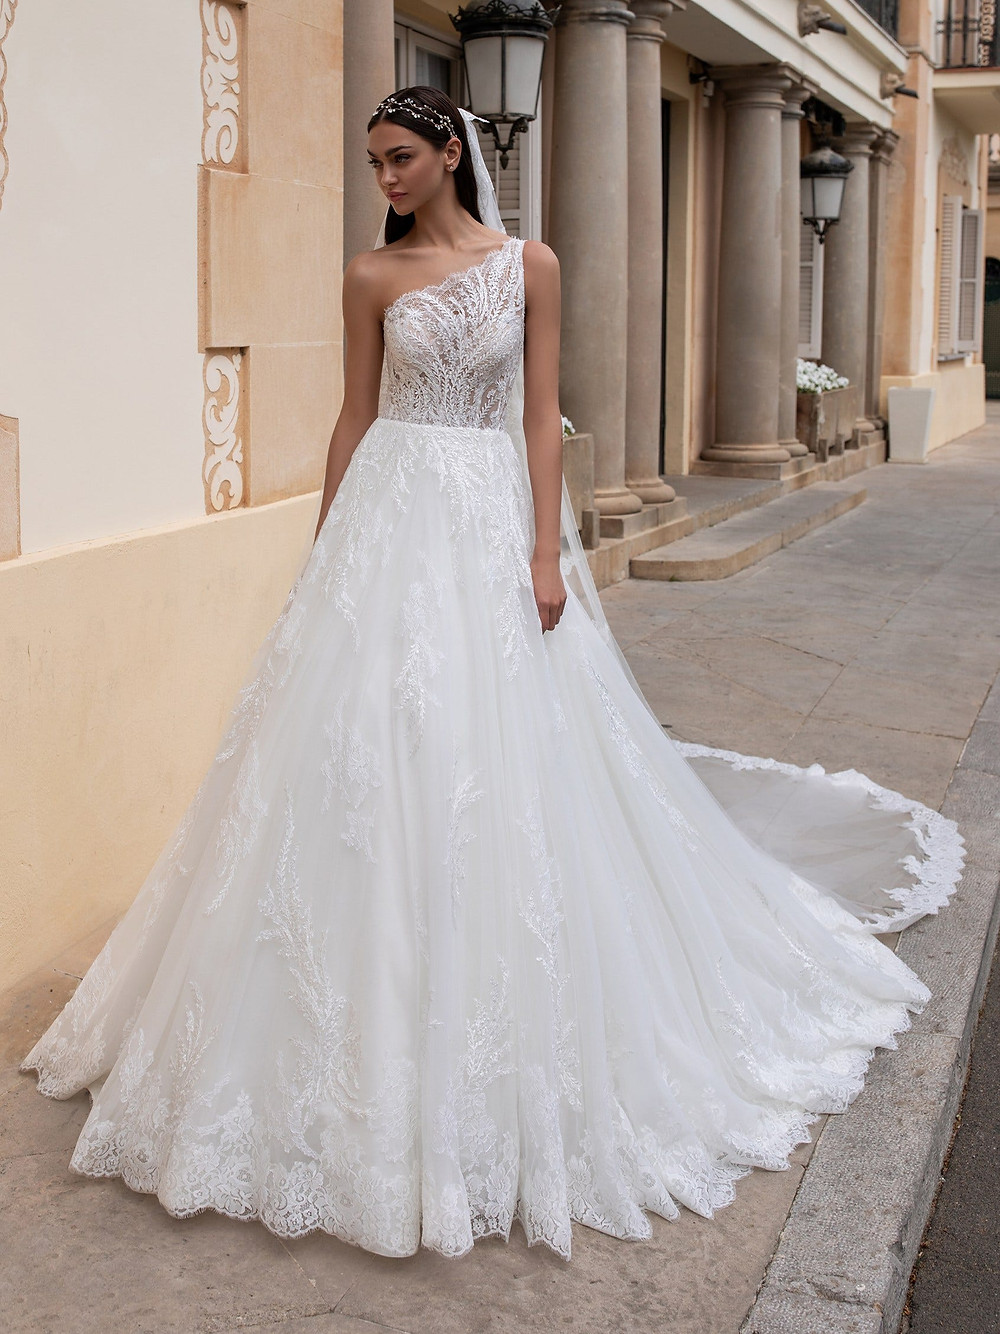 A Pronovias one shoulder, ball gown wedding dress with lace detail